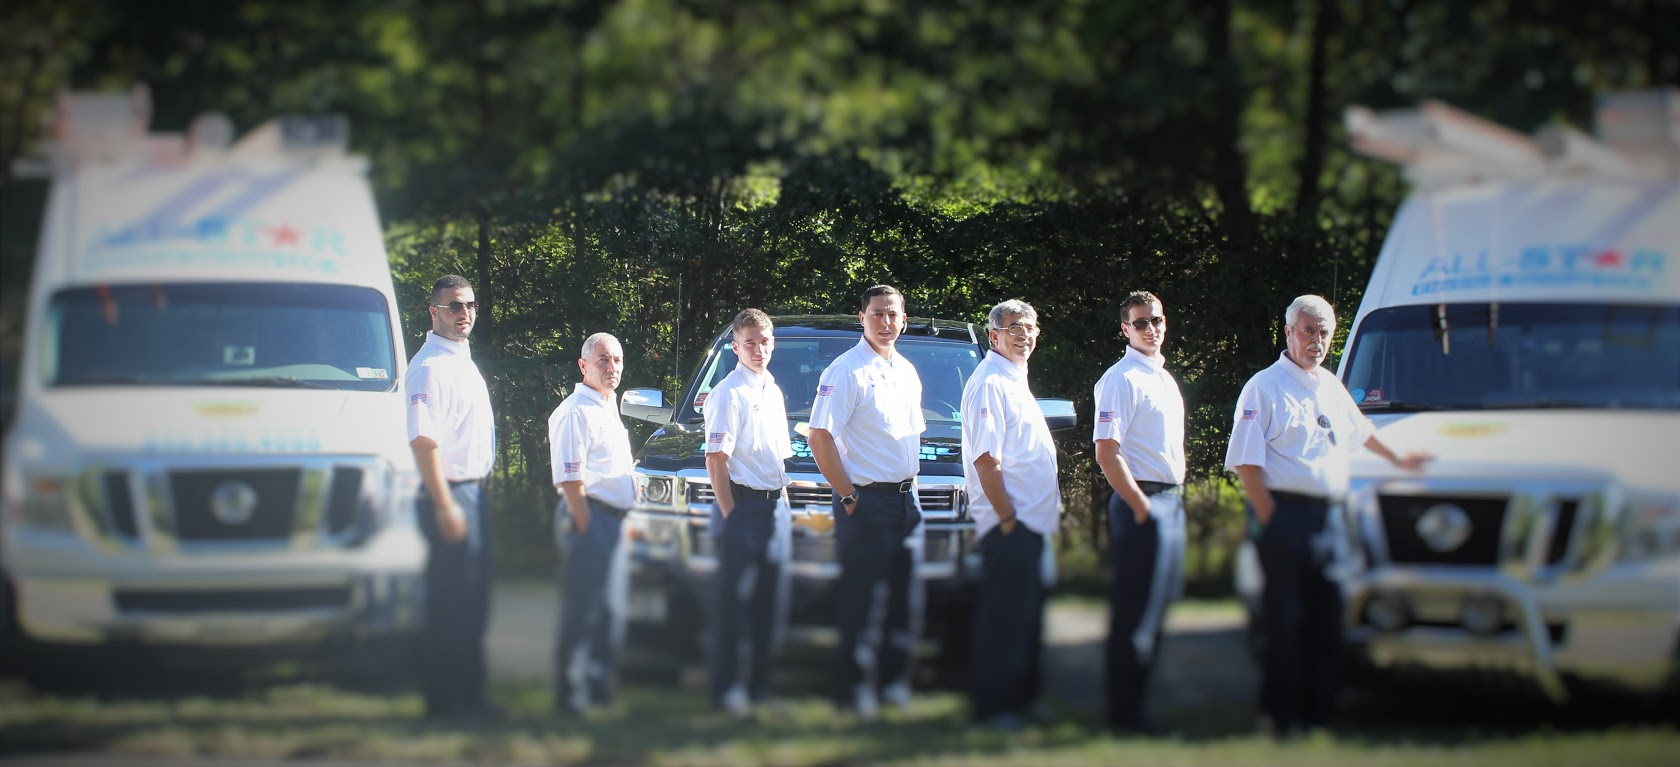 All Star Electrical Services, LLC - Team Photo